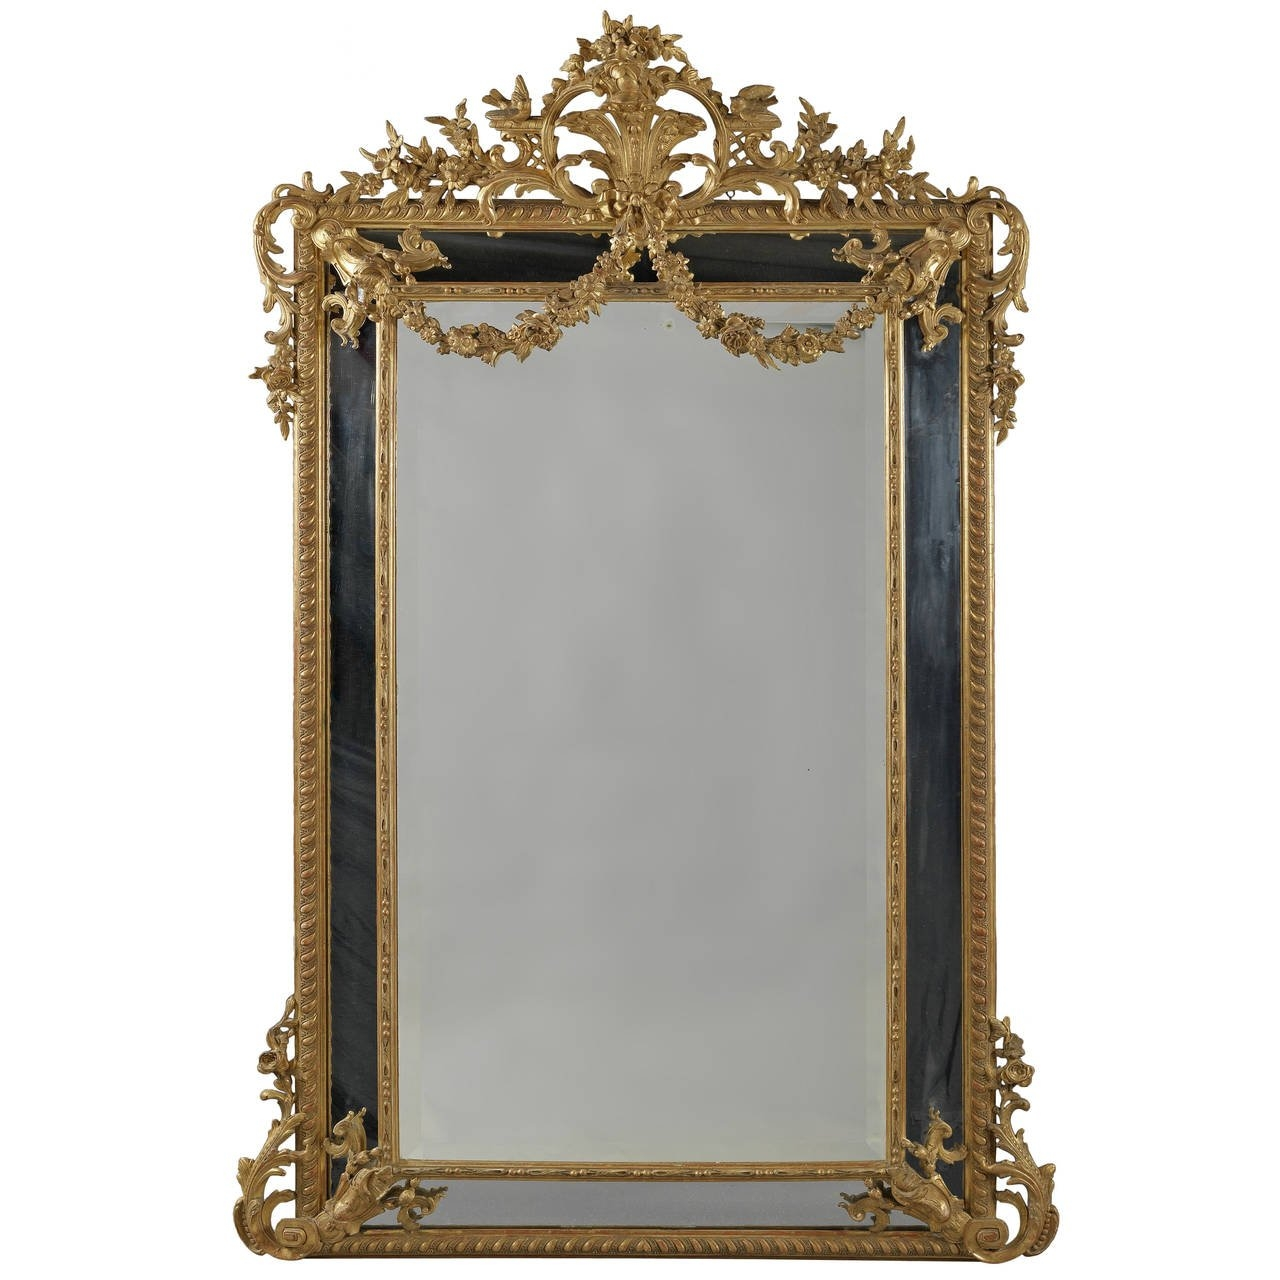 Large Antique Mirror For Sale At 1stdibs Throughout Large Antique Mirror For Sale (View 9 of 15)